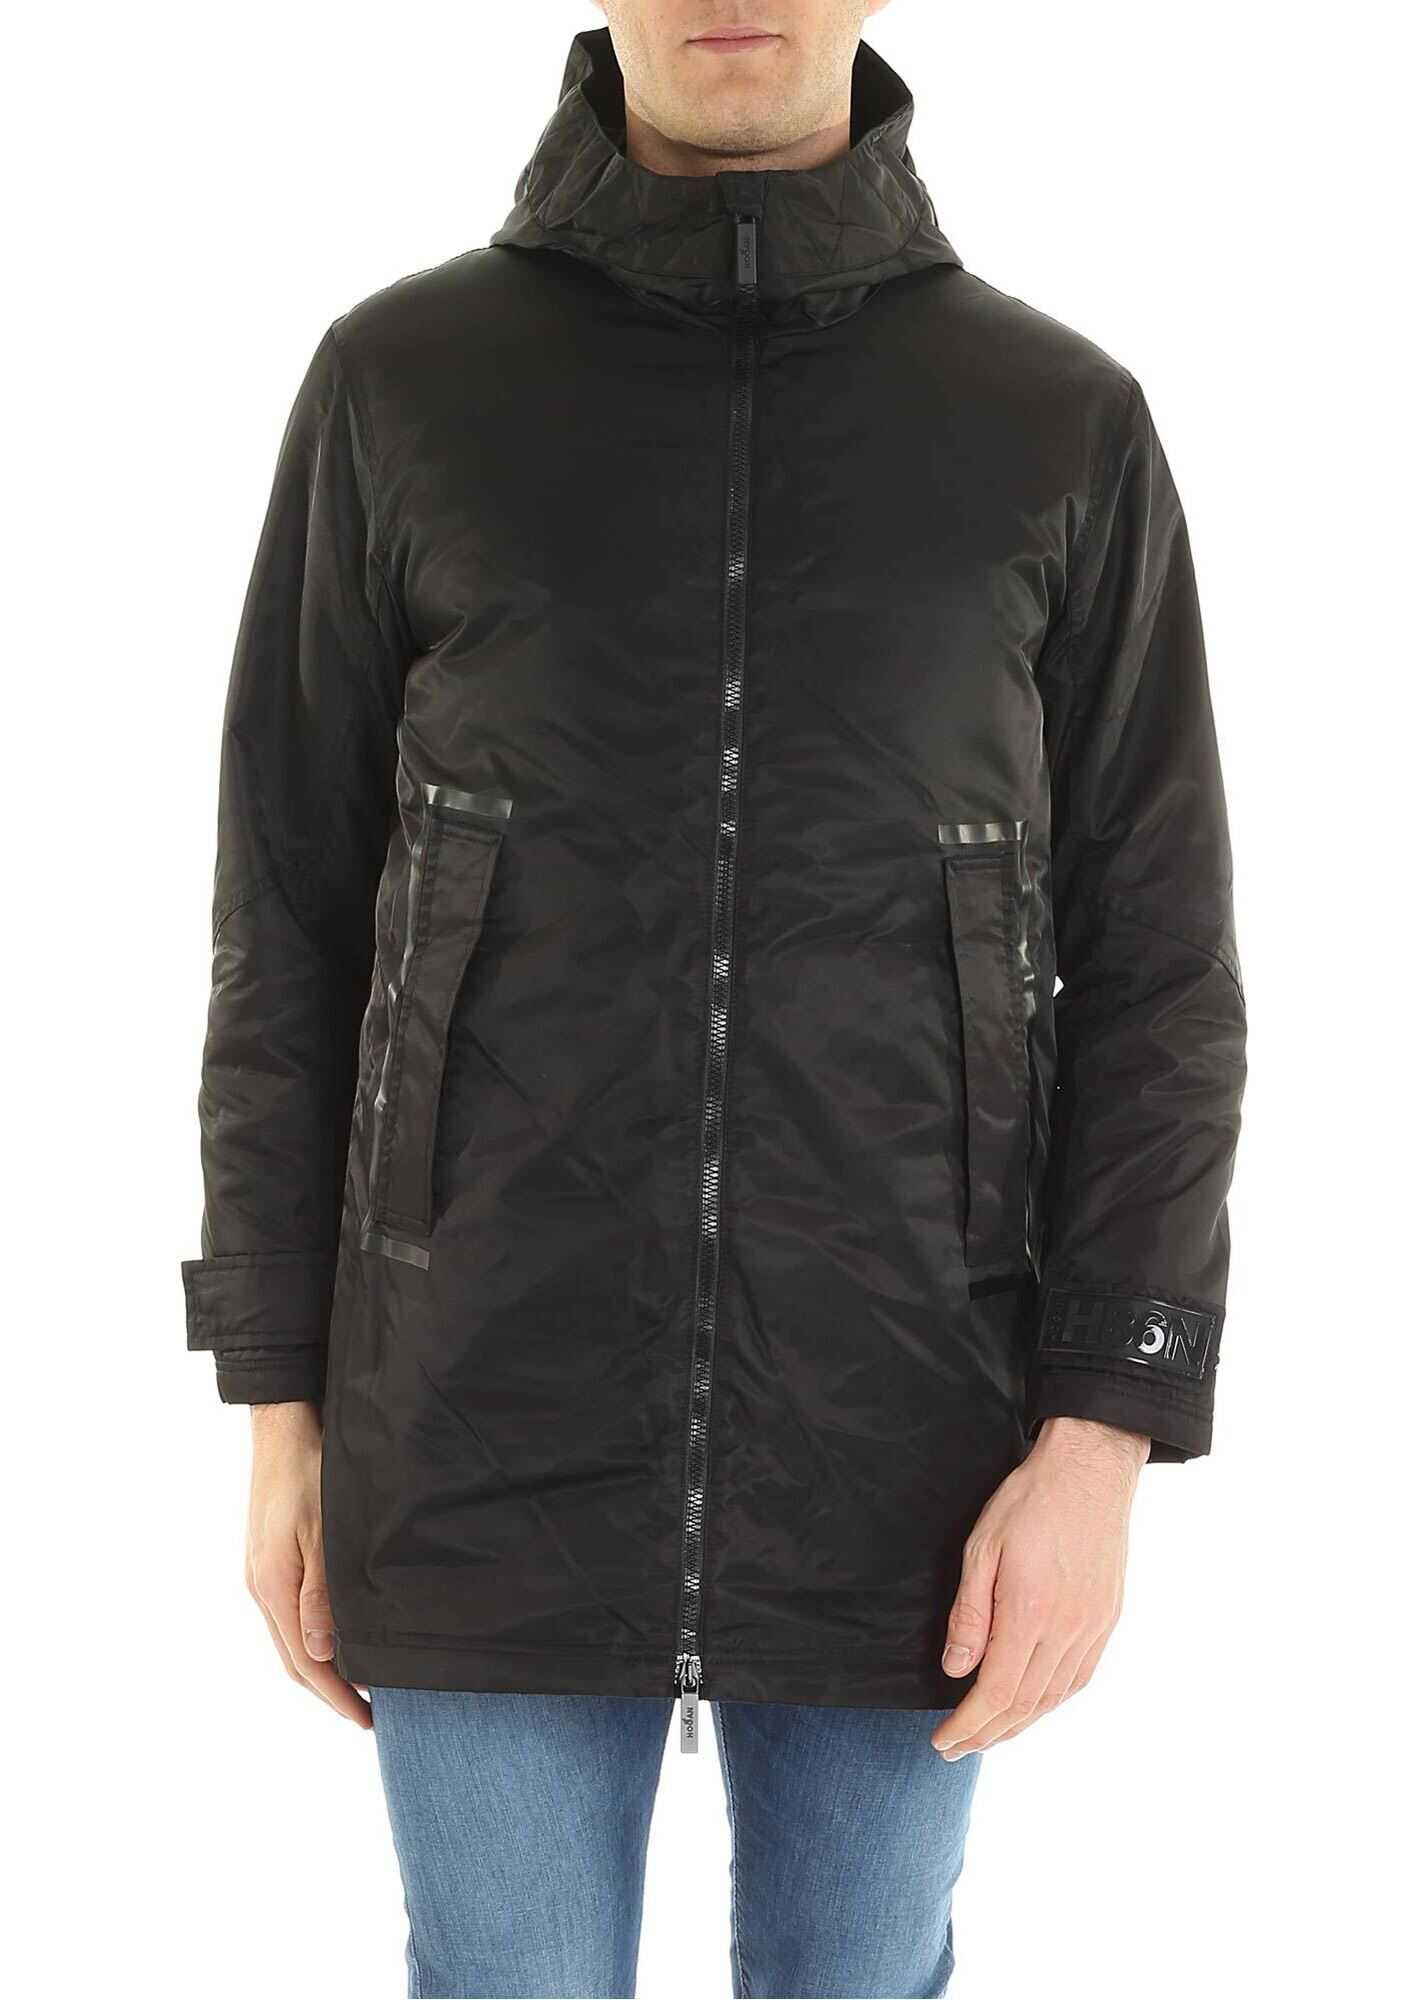 Hogan Black Coat With Down Vest Black